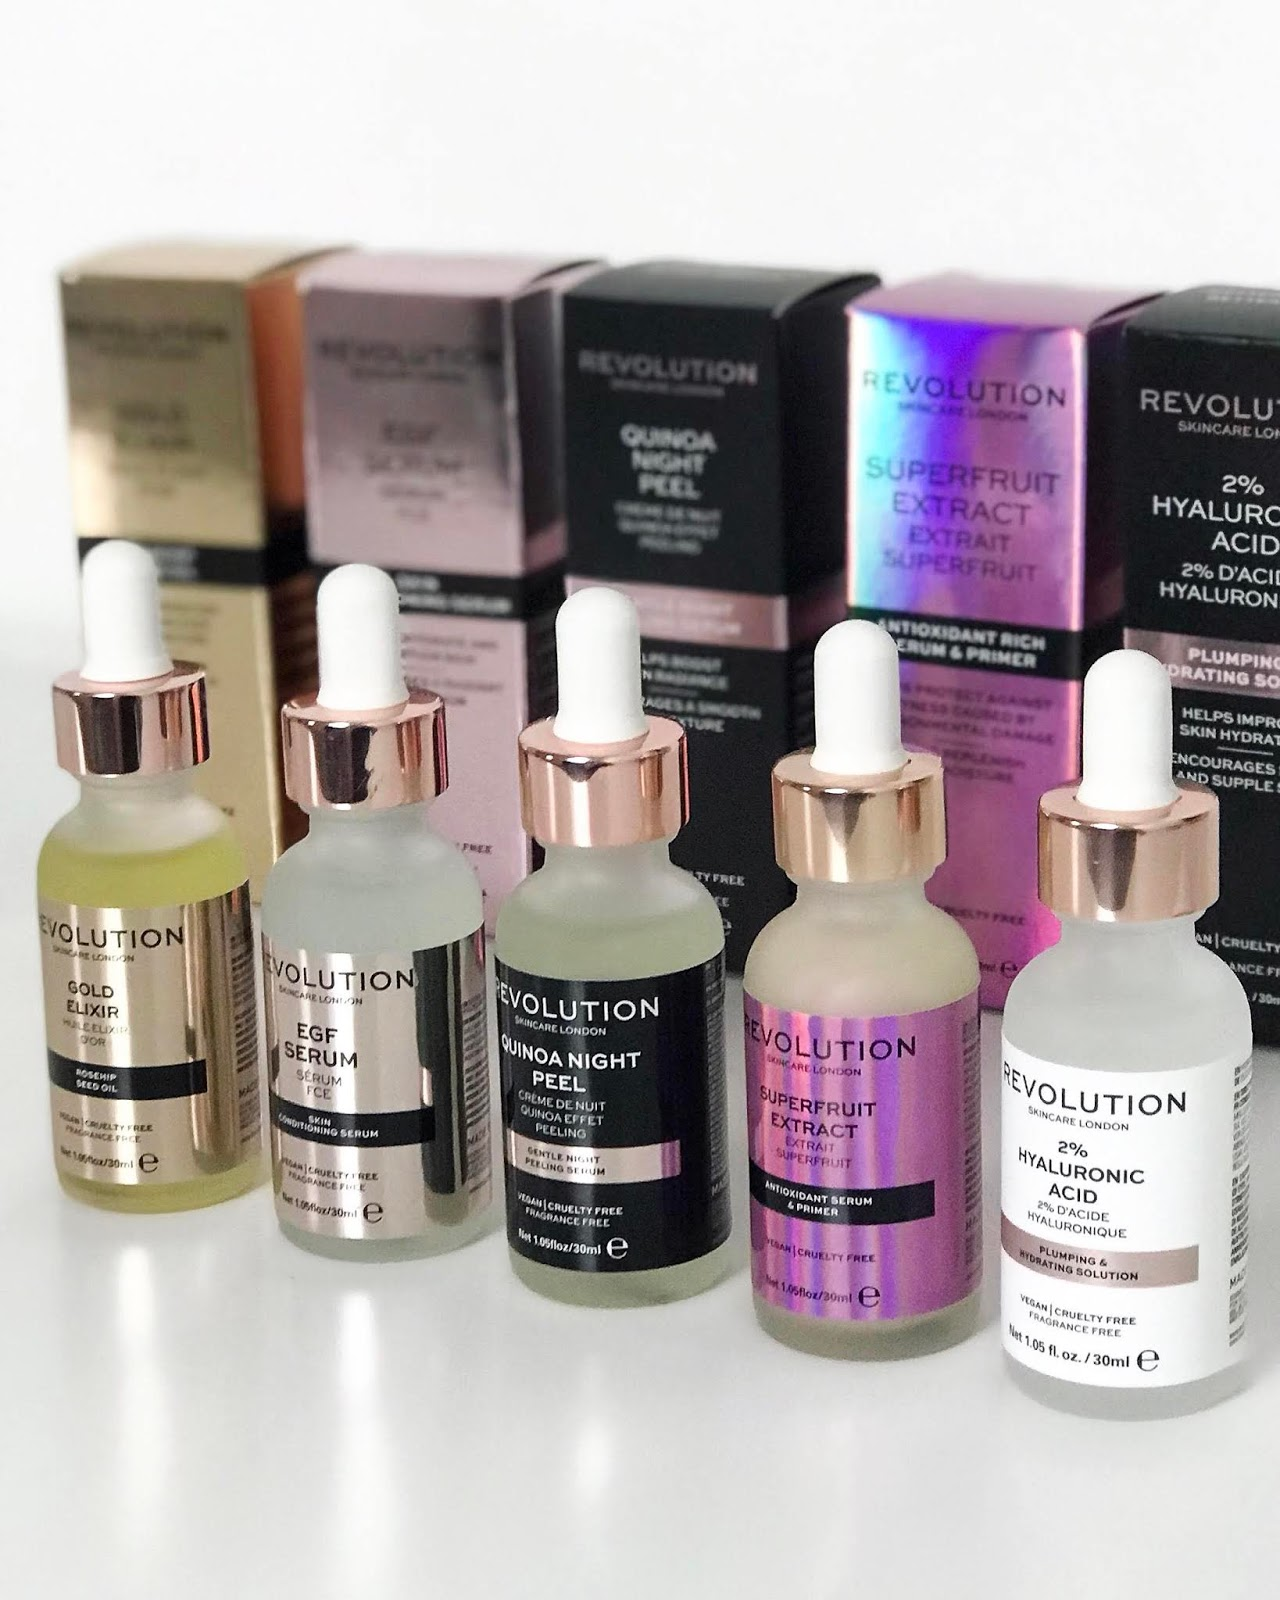 an introduction to revolution skincare